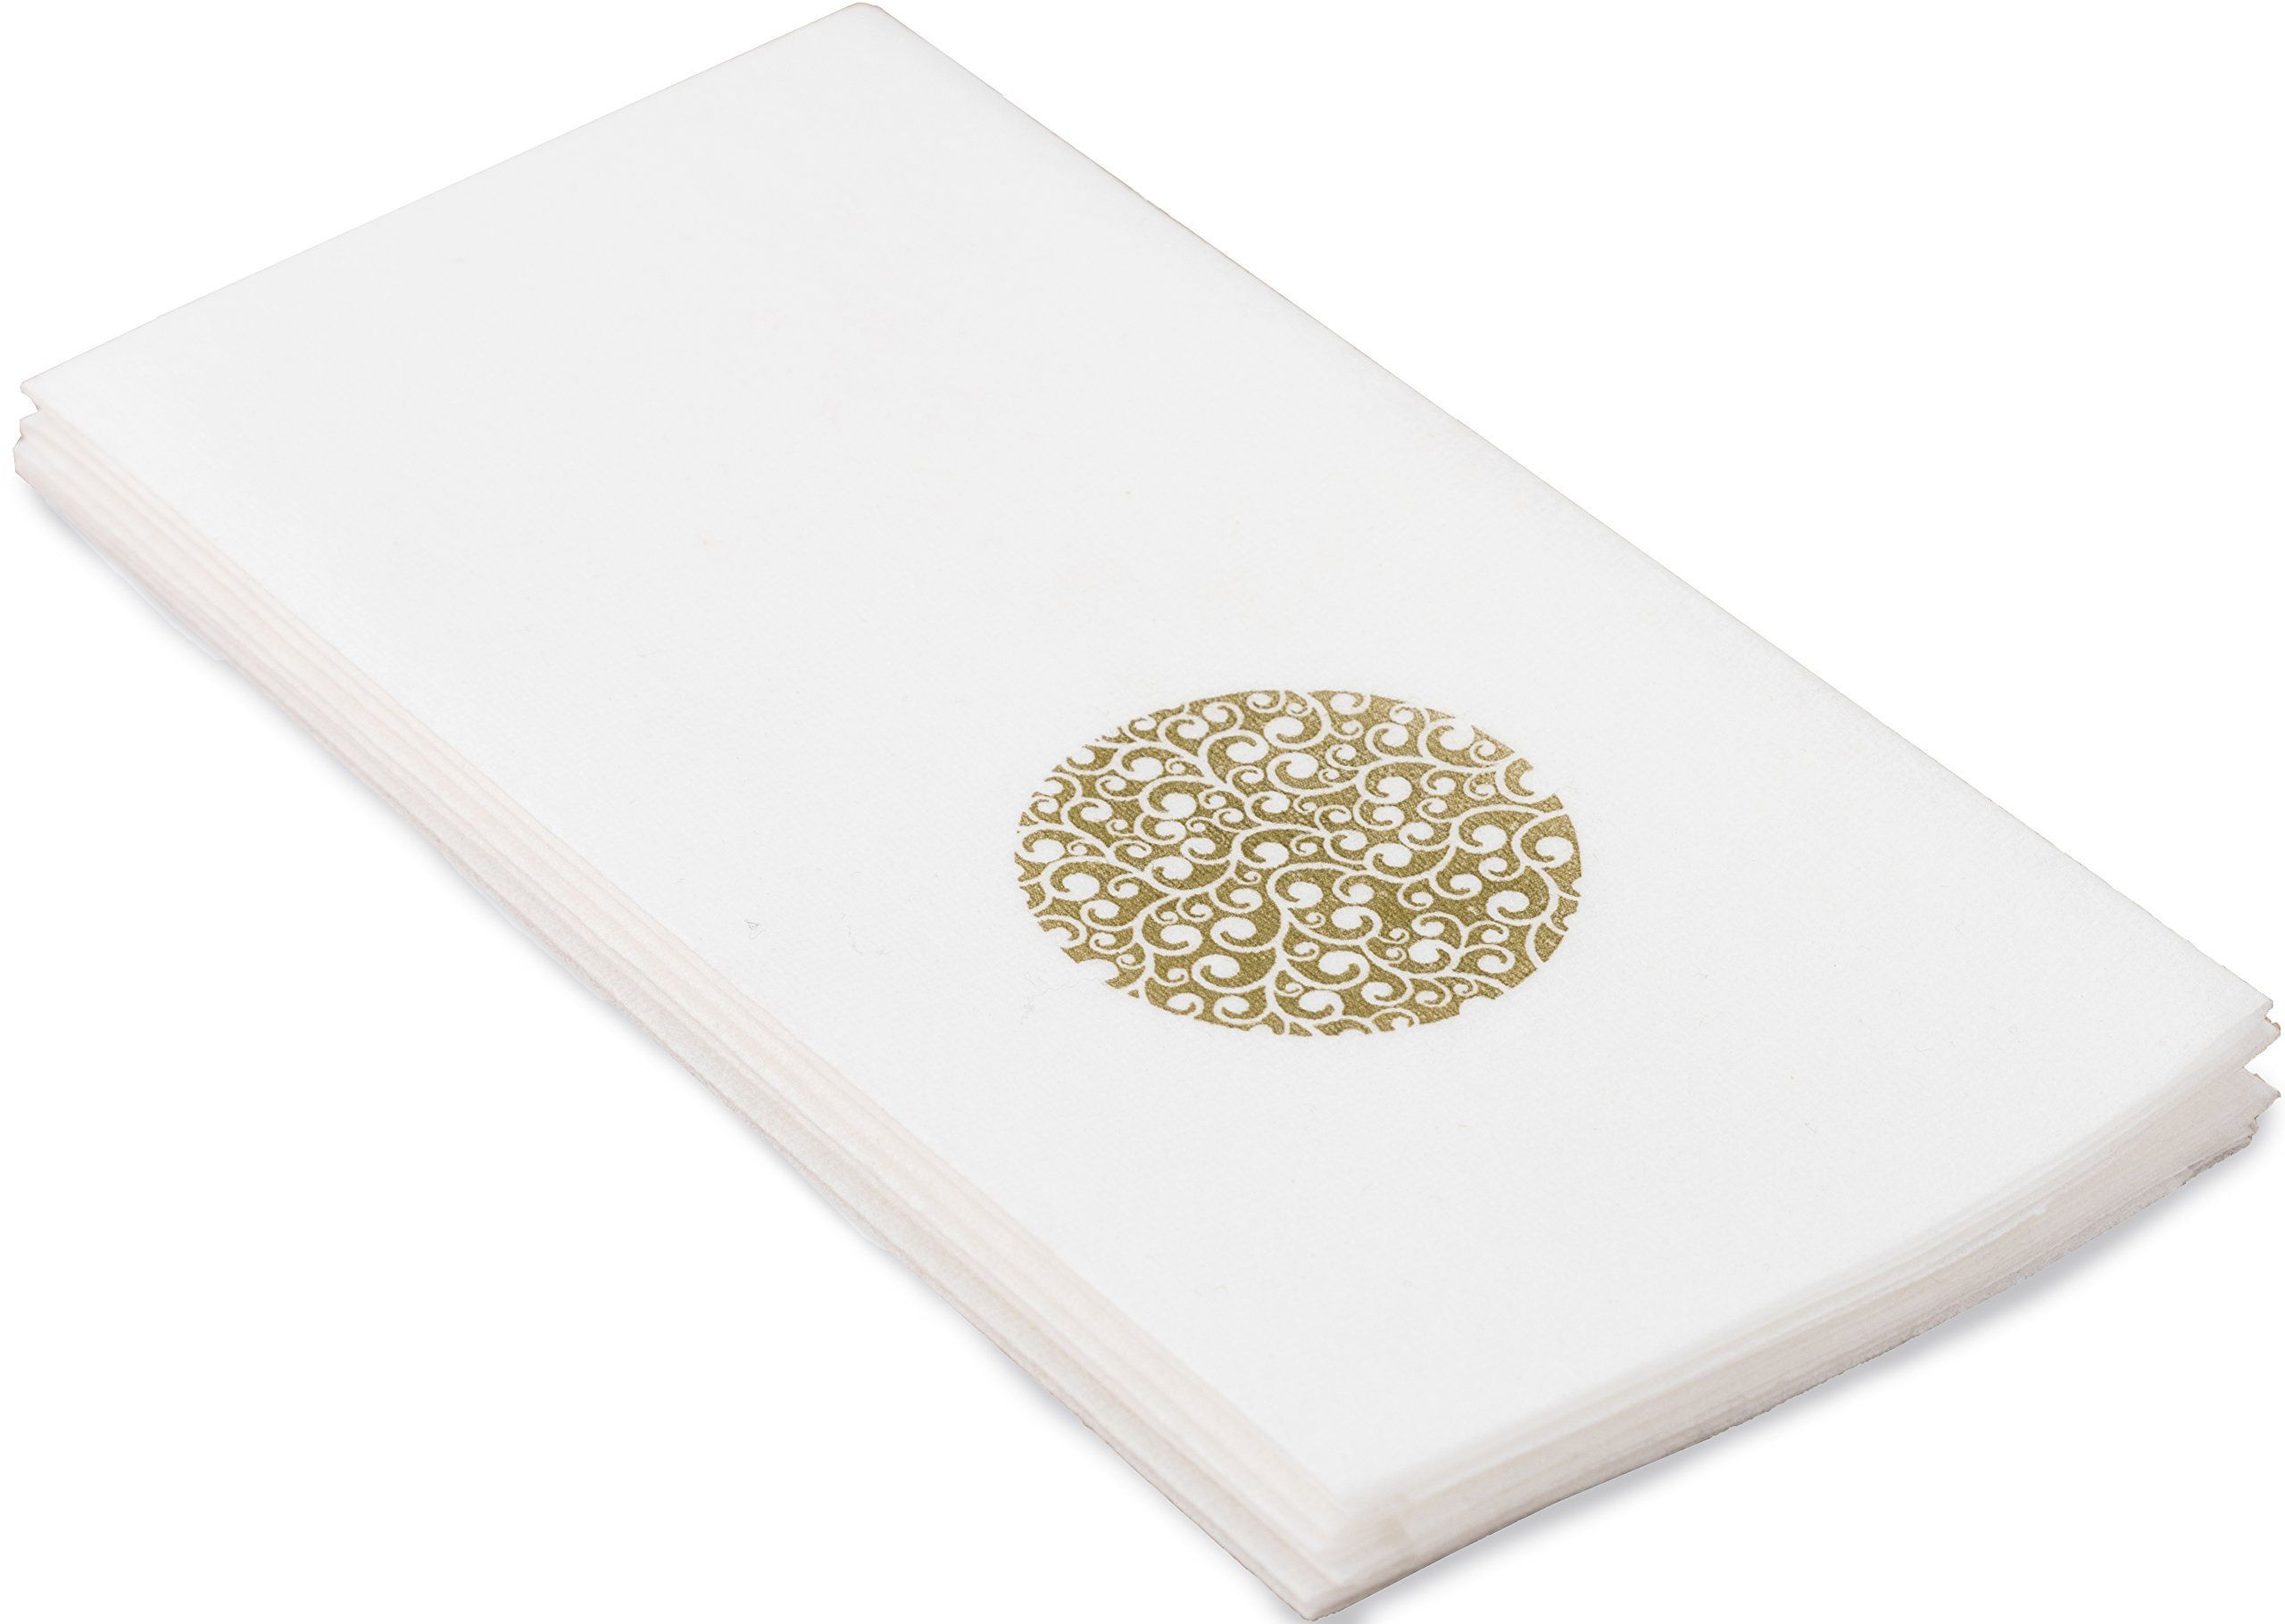 Echo Beach Cloth-Like Guest Towels Napkins, White with Decorative Gold Circle, 1/6 Fold, 17 Inch by 12 Inch, 100 Units Per Pack Plus e-newsletter